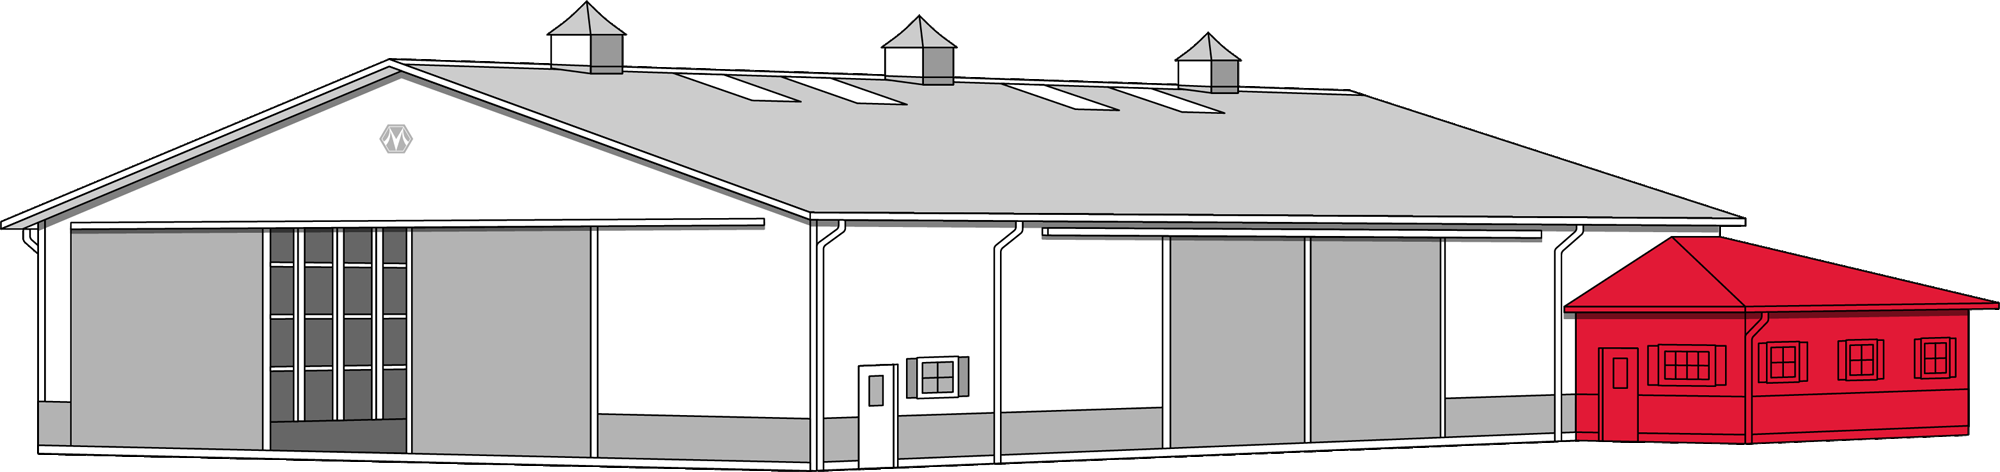 svg black and white library Repairs morton buildings building. Warehouse clipart pole barn.